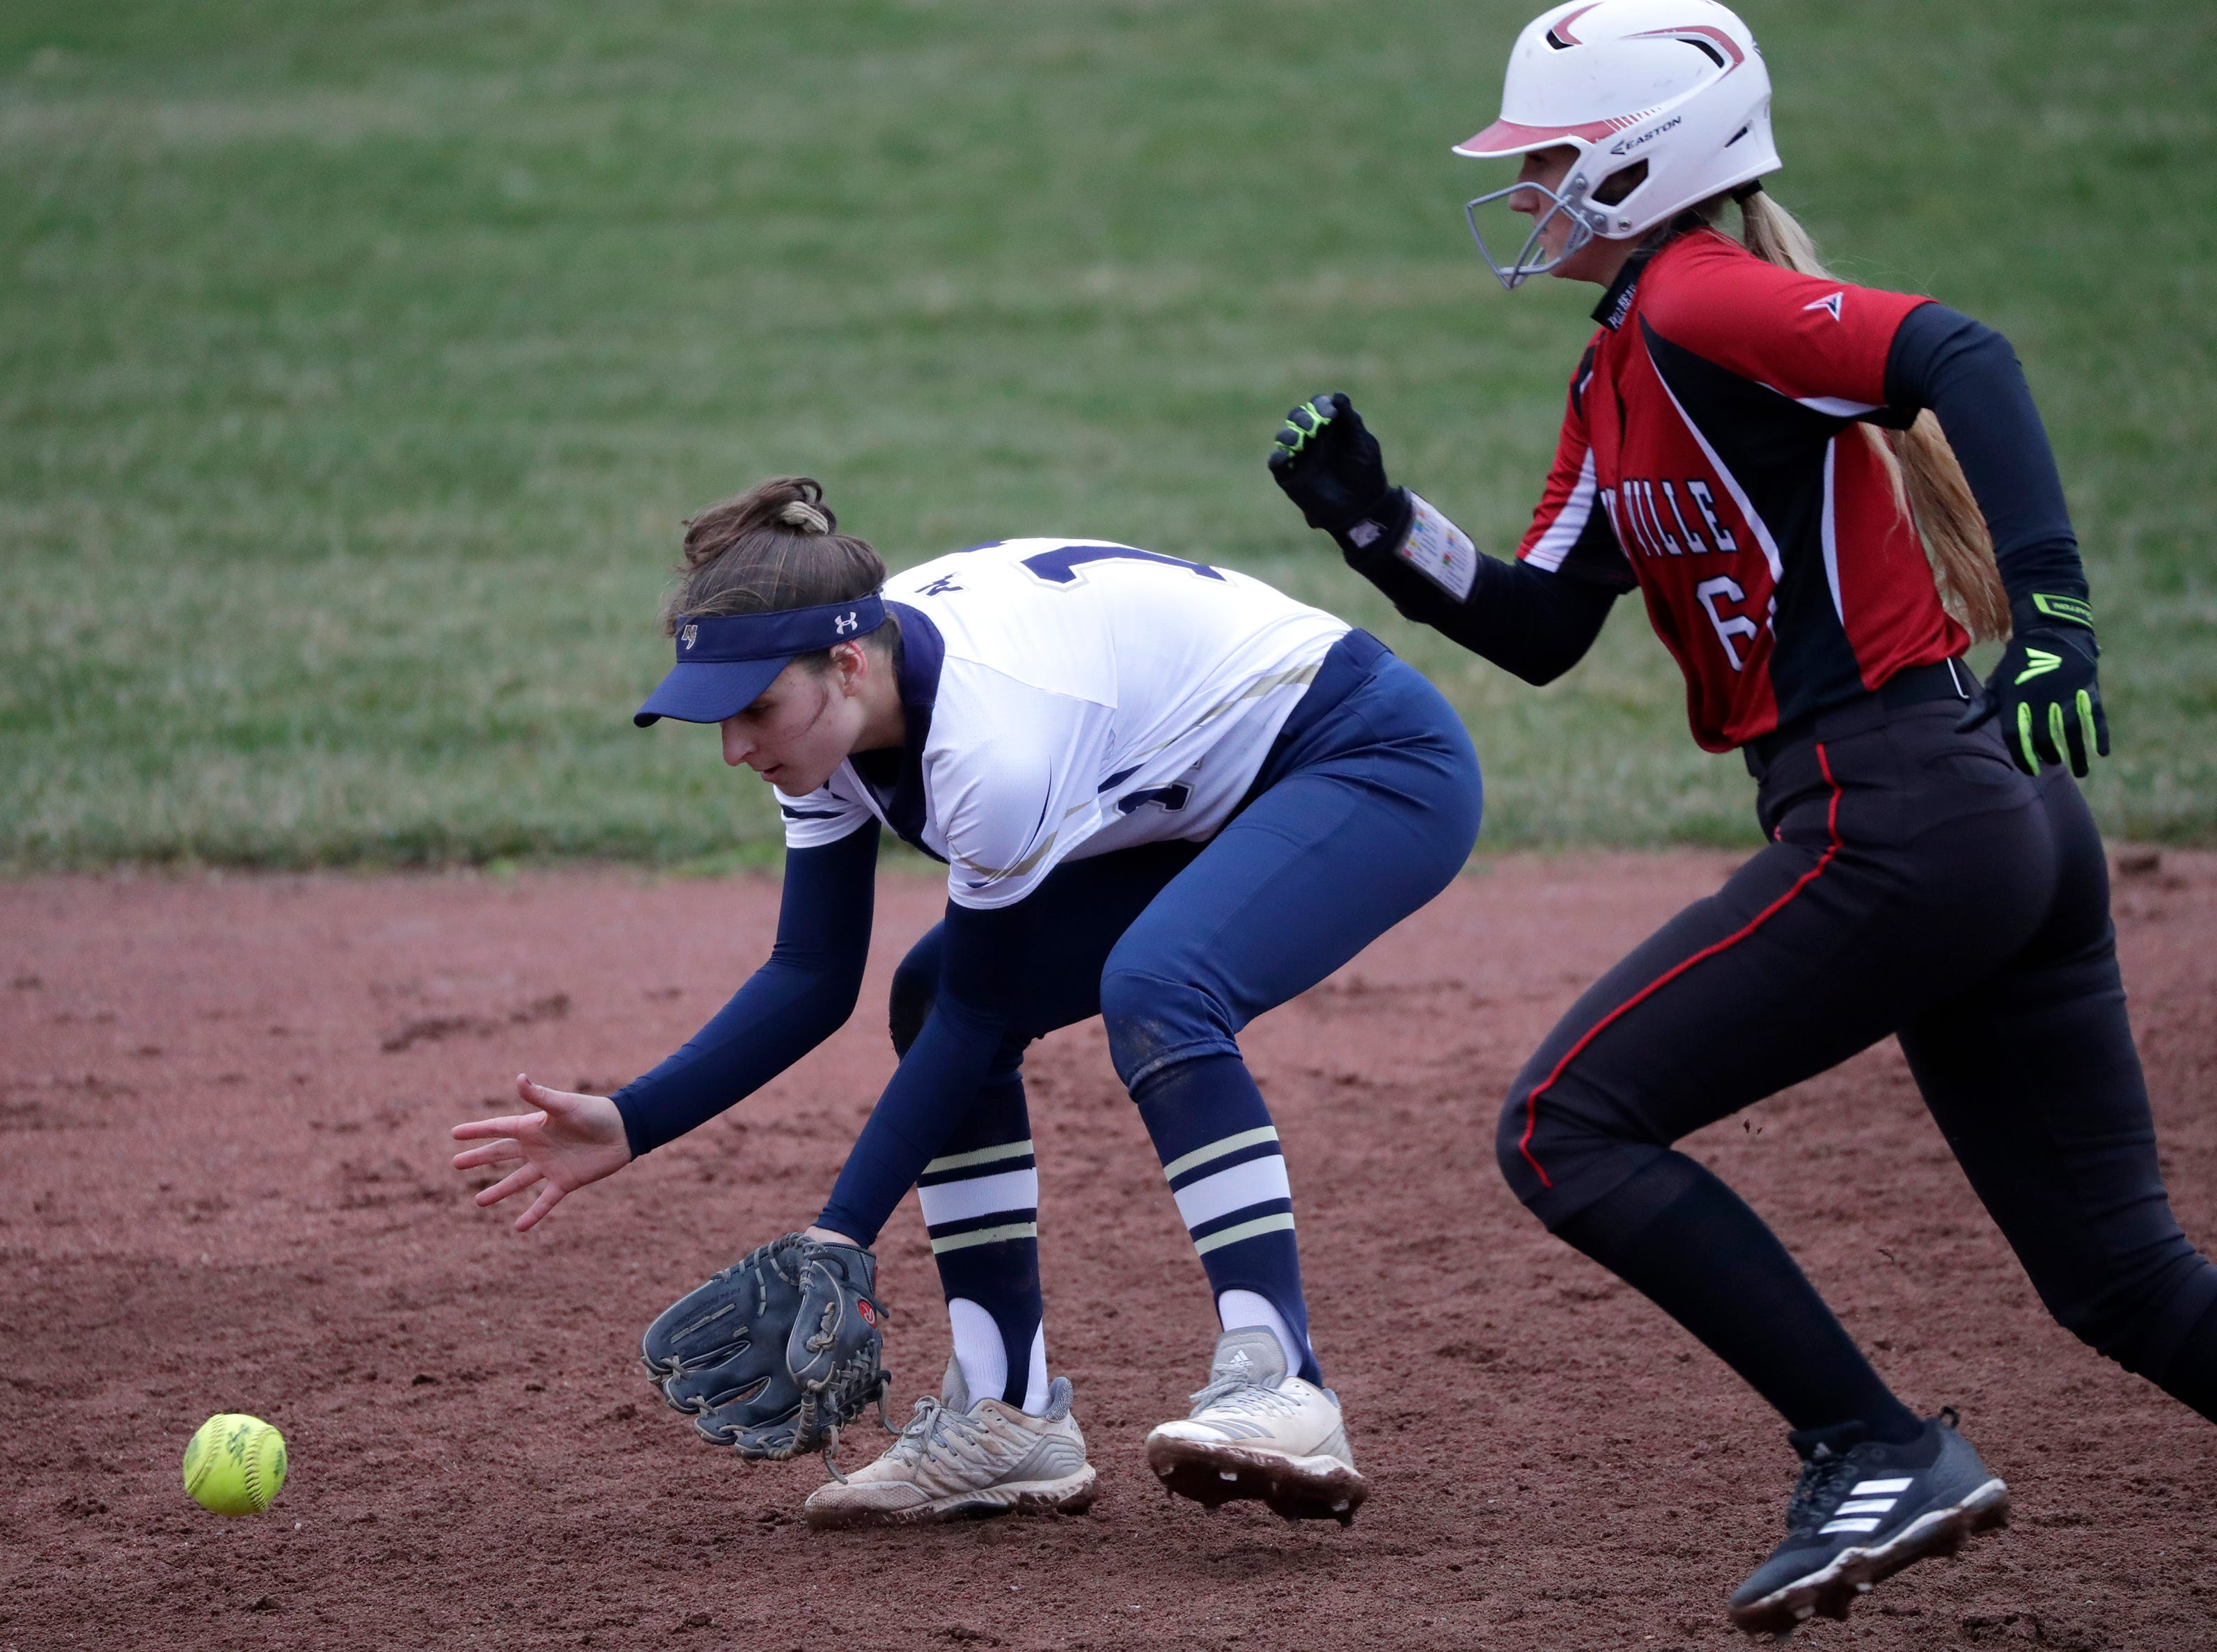 Appleton North High School's Lydia Krueger (11) fields a hit as Hortonville High School's Morgan Graybill (6) heads to third base during their girls softball game Monday, April 22, 2019, in Appleton, Wis. 